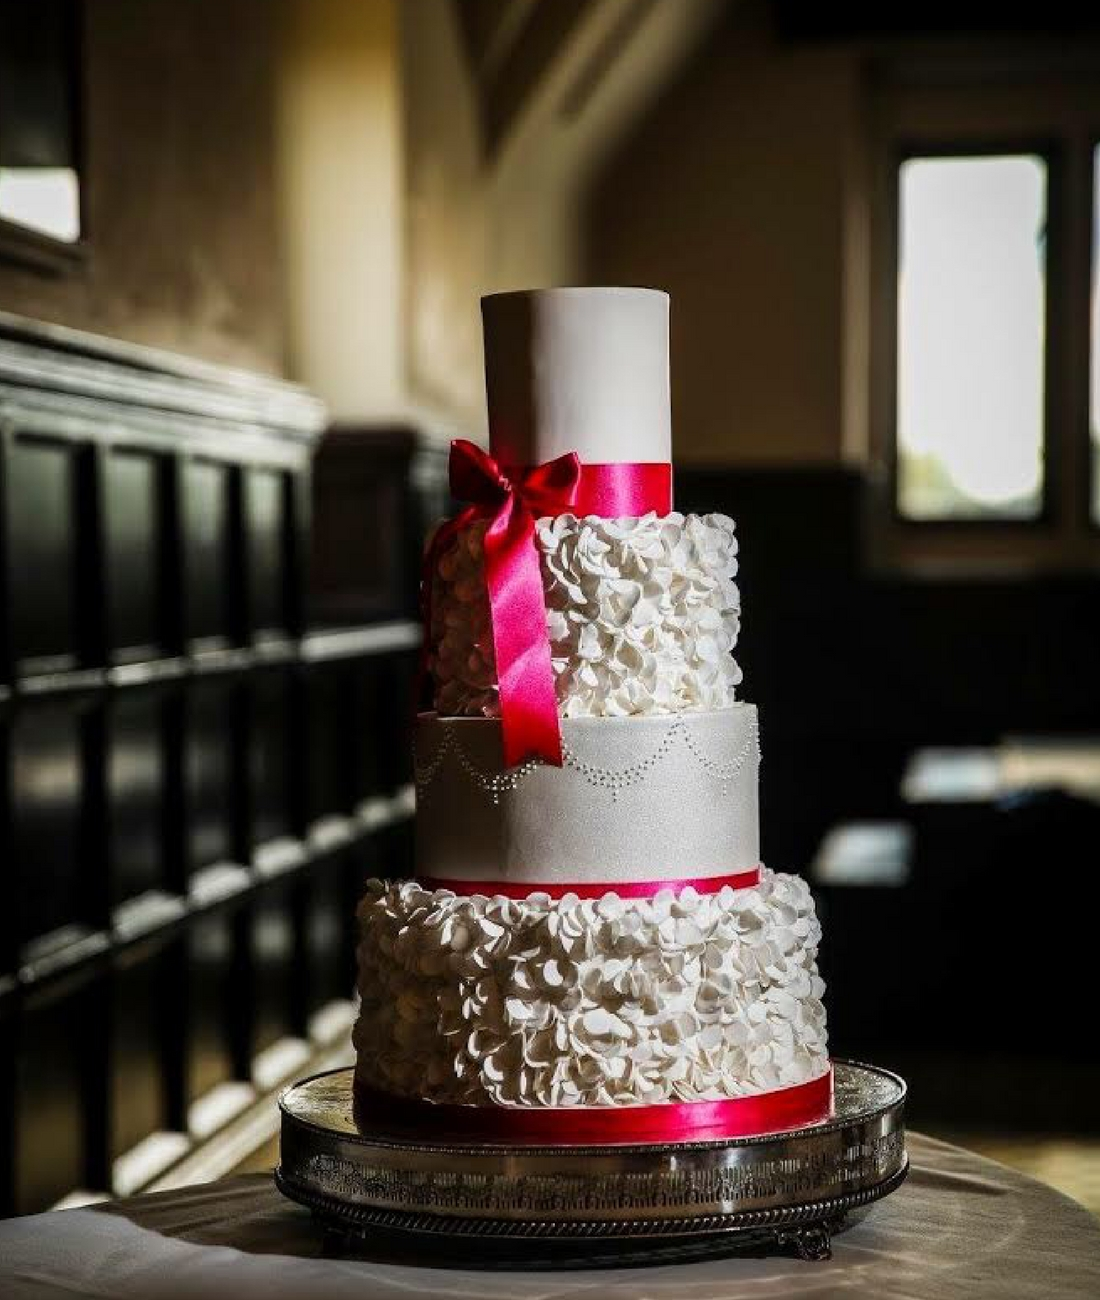 Love Artisan Wedding Cakes - Ruffles Silver Pink Wedding Cake